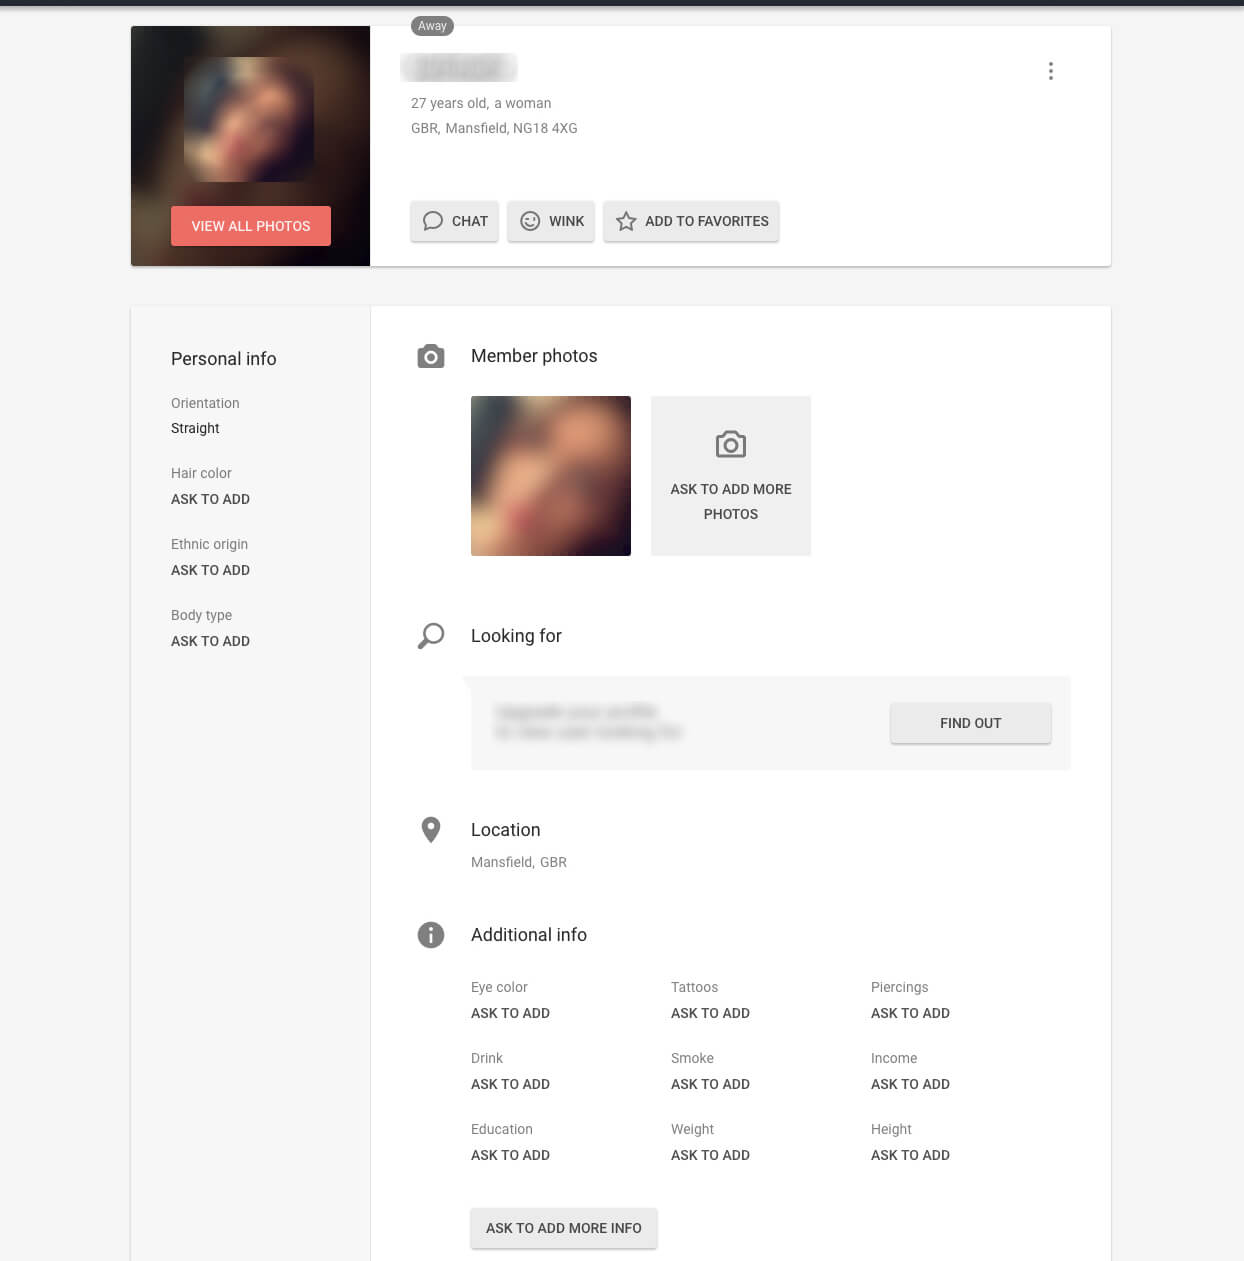 Flirt Review February 2021 Flirty Dates Or Just Fakes Datingscout Com